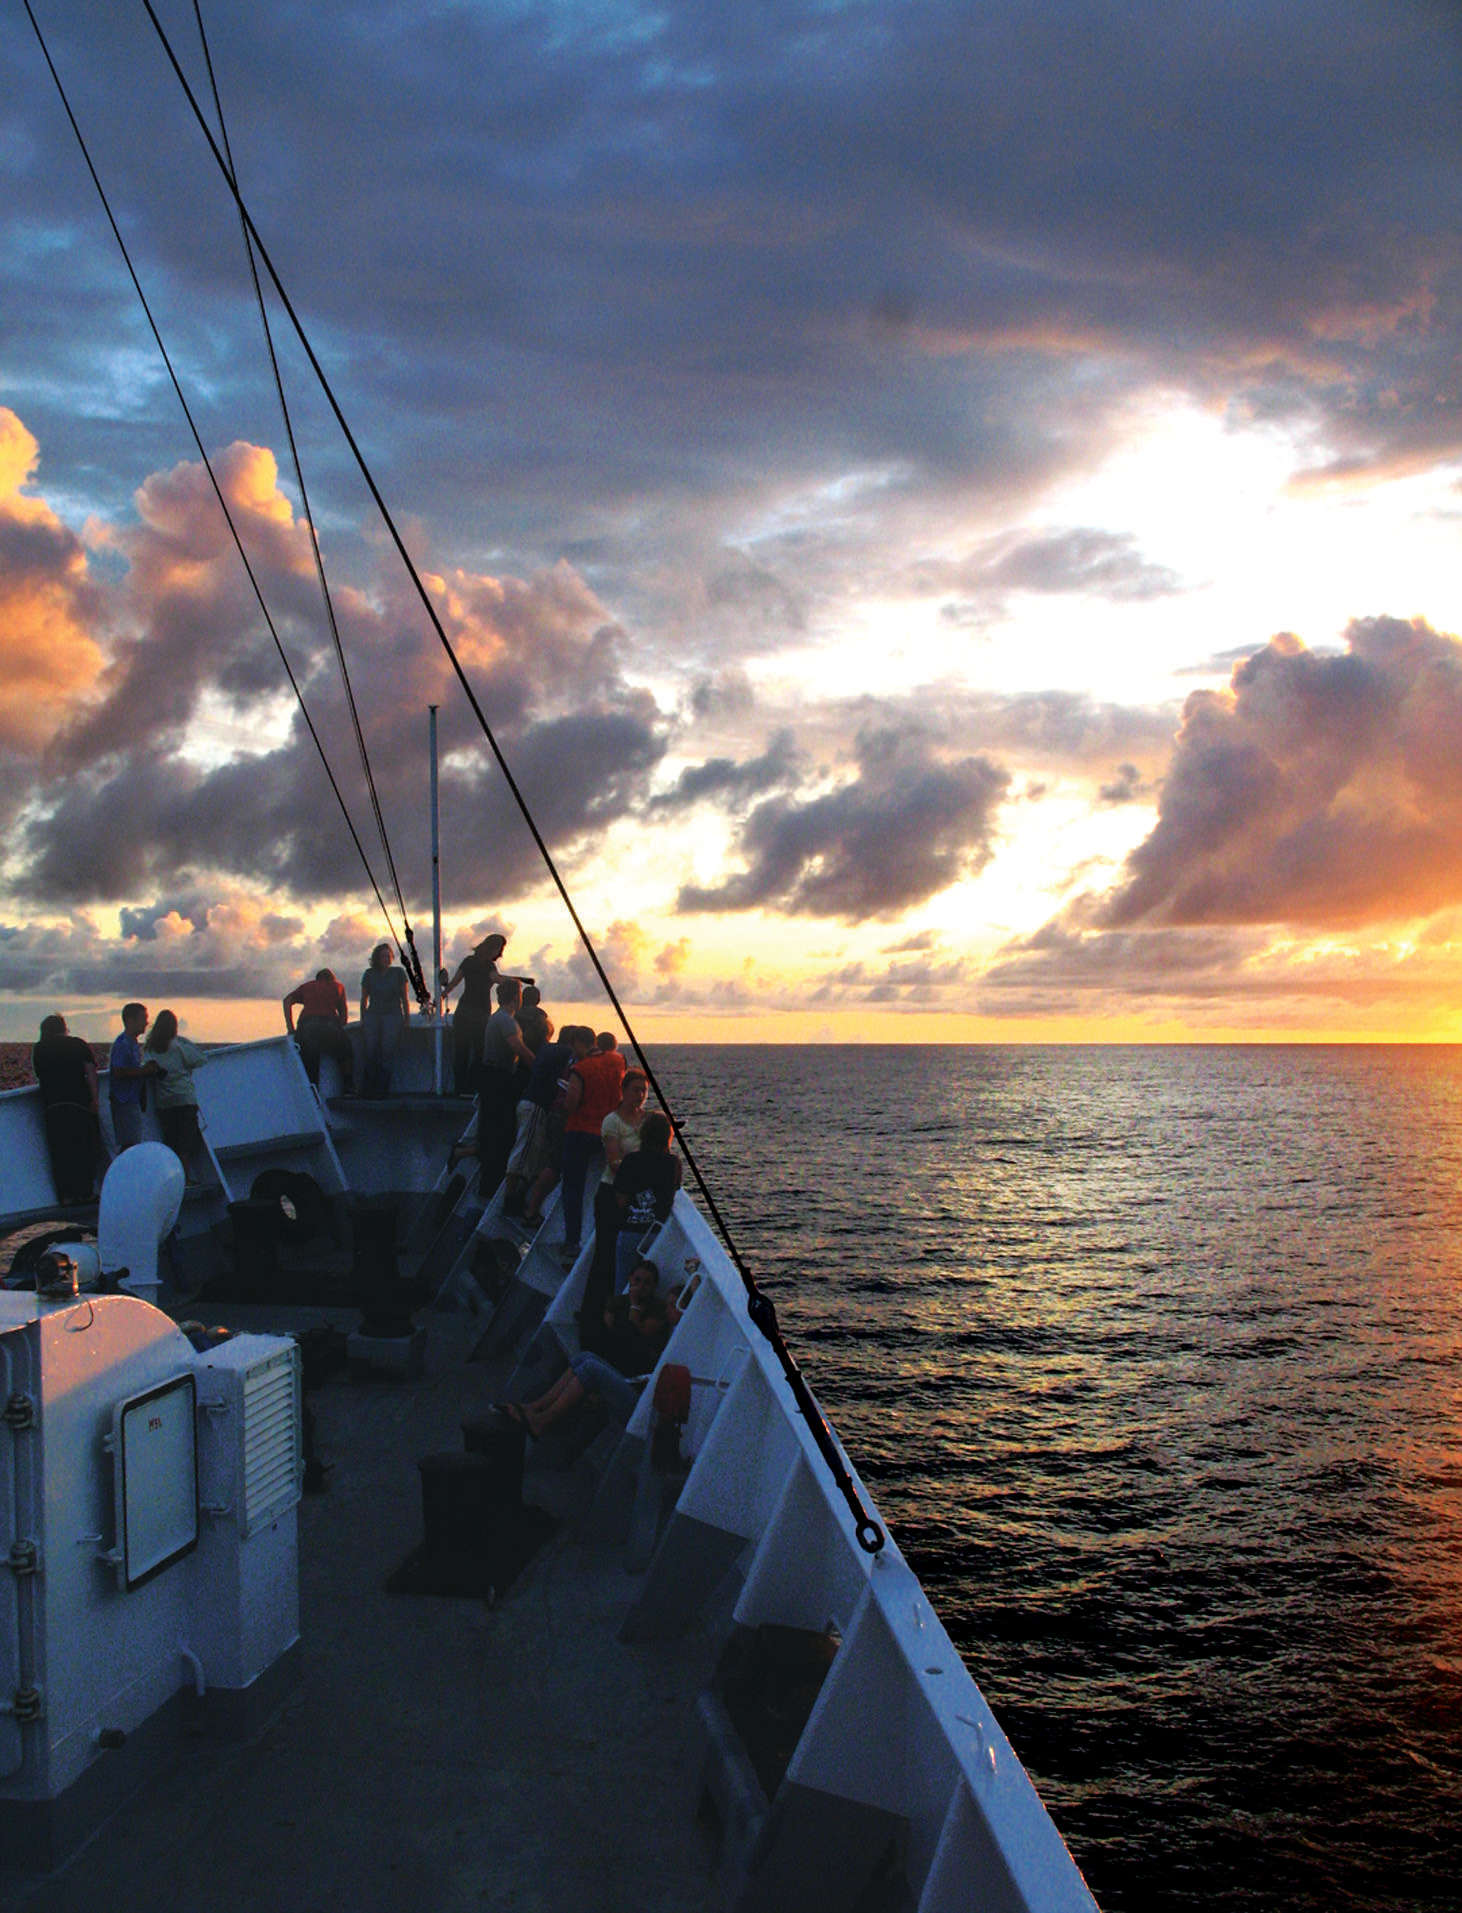 Sunset on voyage